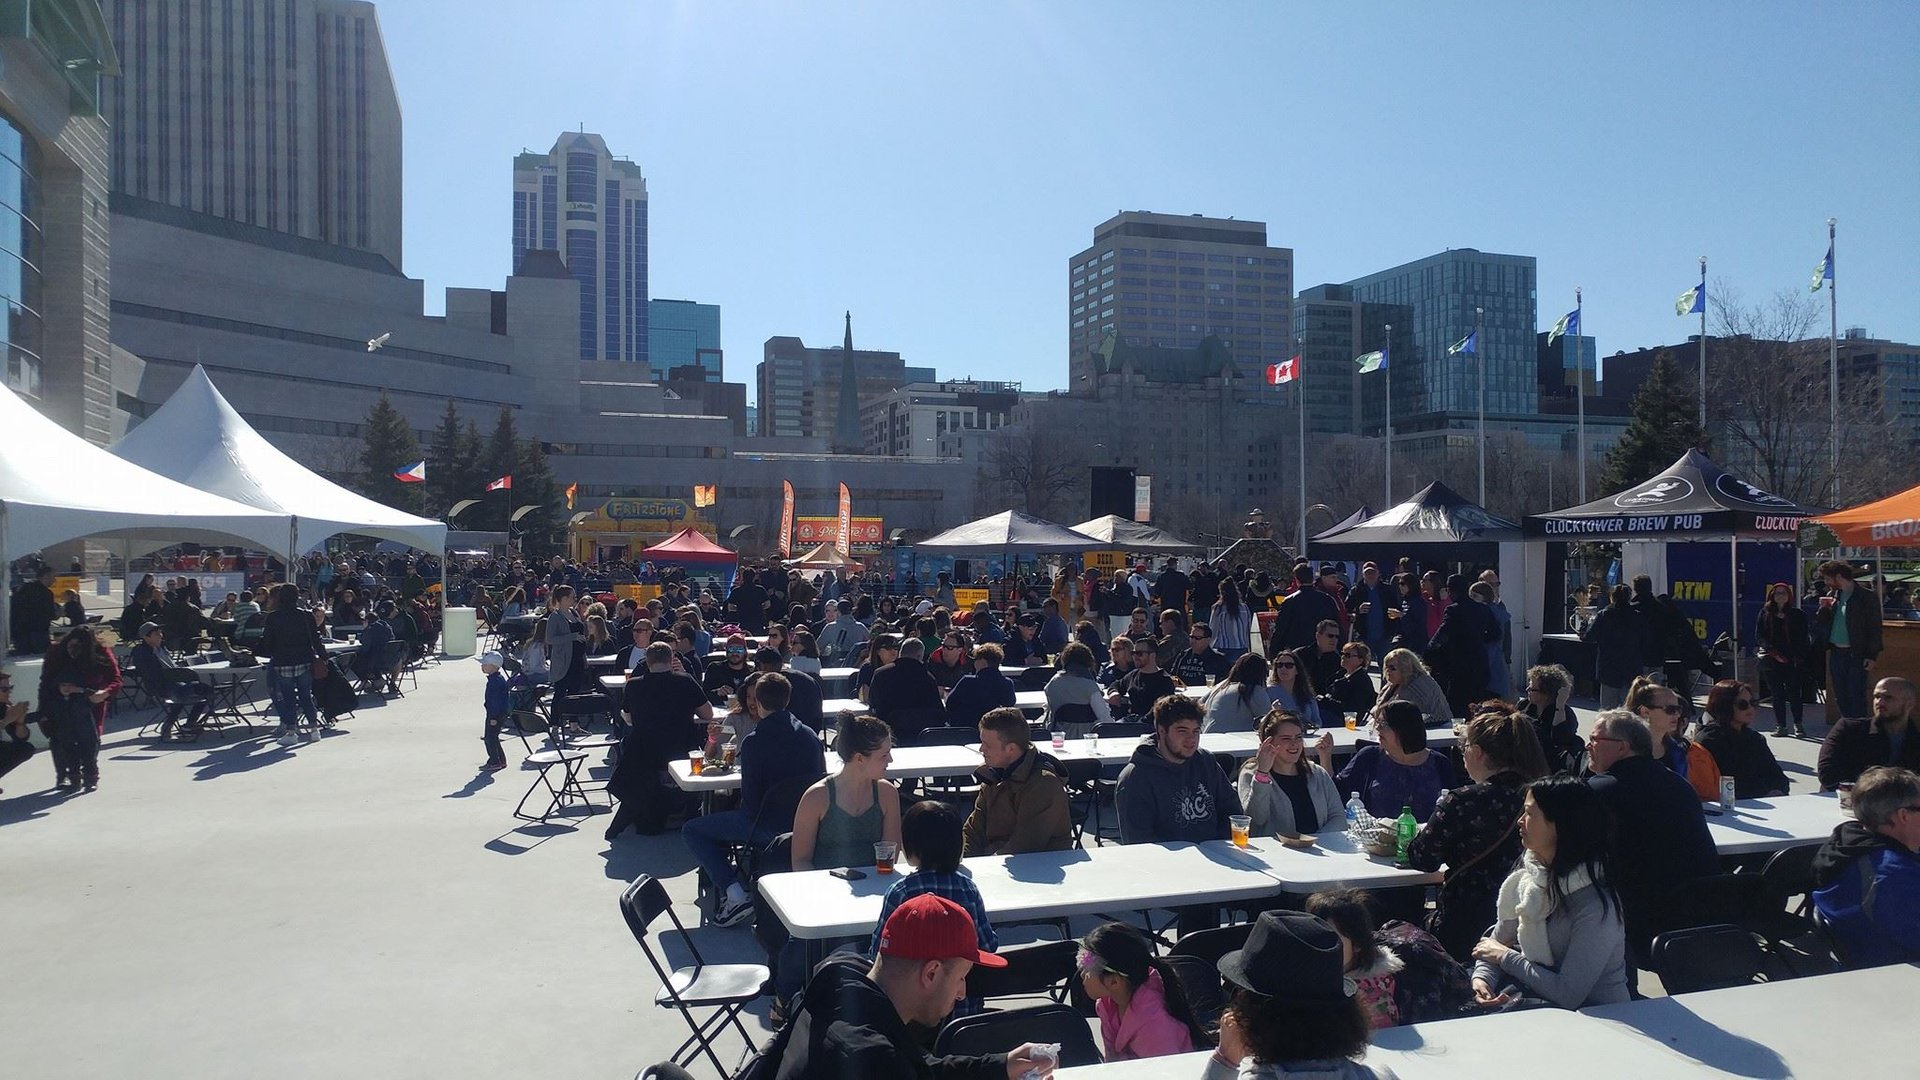 Ottawa PoutineFest in Ottawa - Best Season 2019